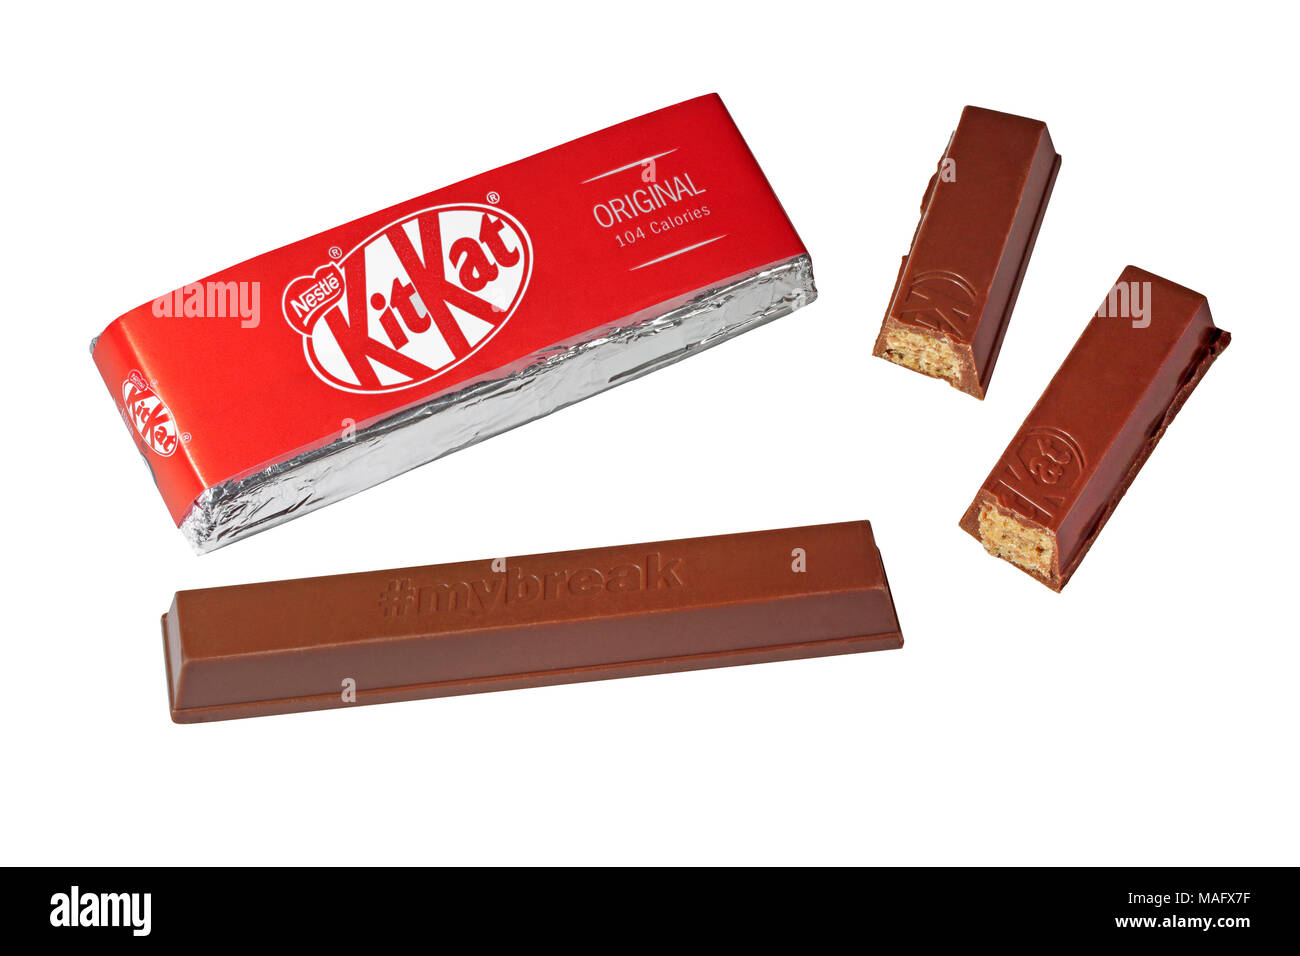 A two finger original KitKat by Nestle One bar wrapped and one bar unwrapped with one finger broken in two isolated on a white background - Stock Image